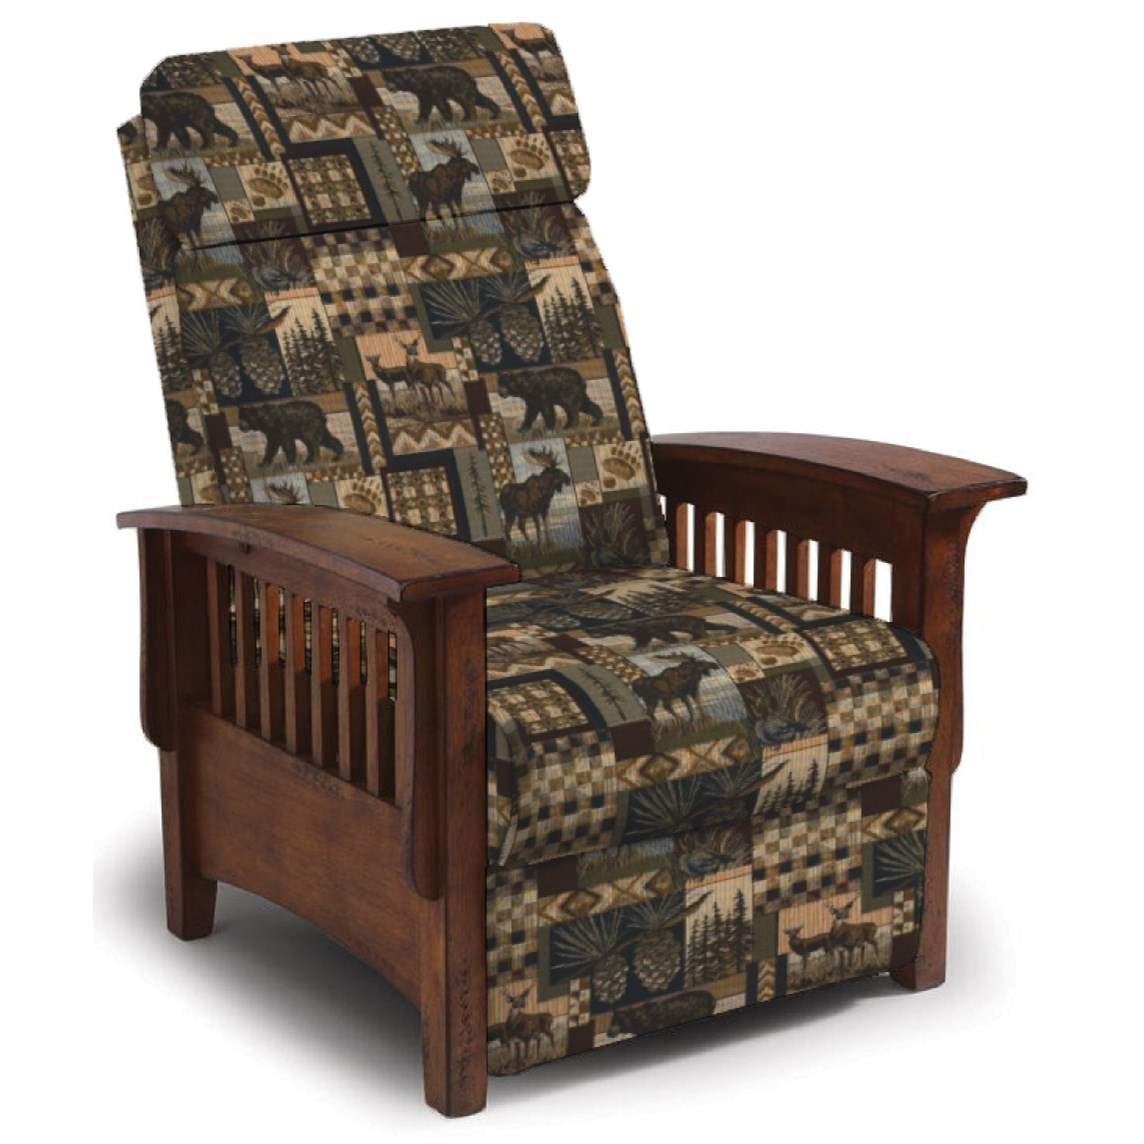 Best Home Furnishings Recliners Pushback Tuscan Pushback Recliners Olinde 39 S Furniture High